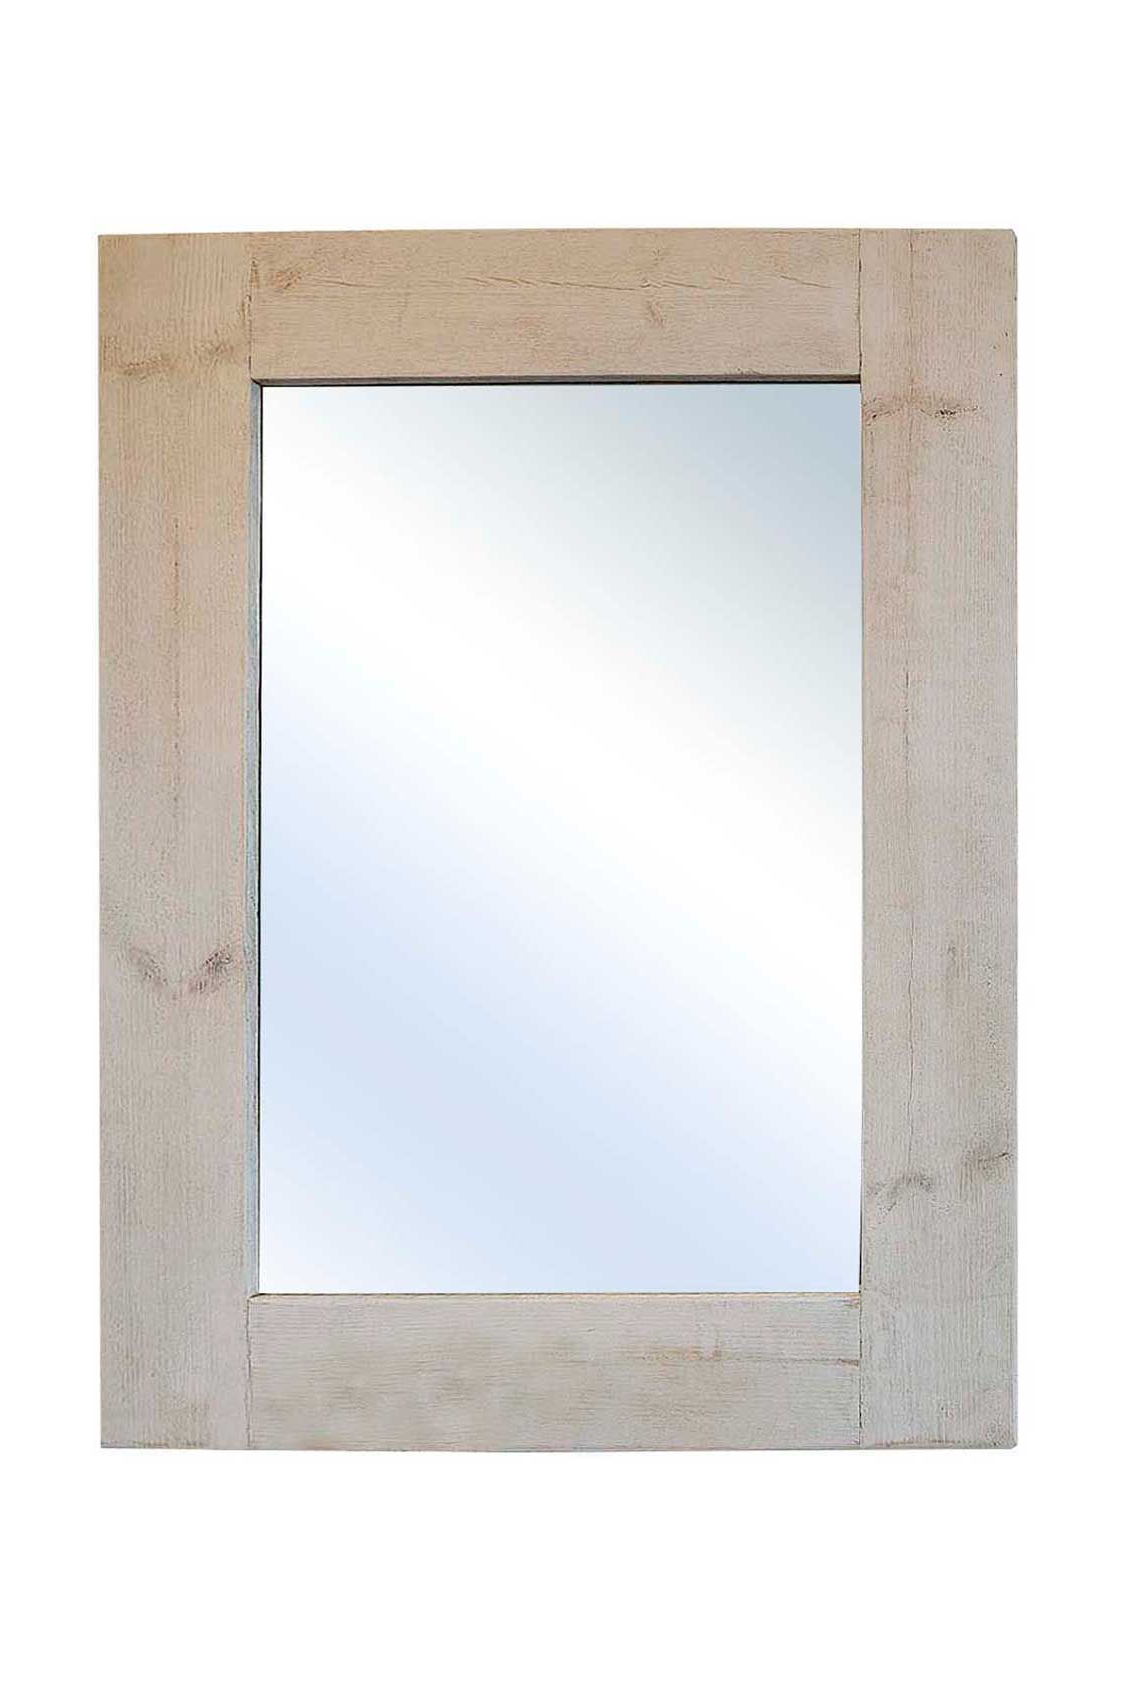 24 X 36 Wall Mirrors Intended For Most Popular Madrid Light Rustic Wooden Wall Mirror 24X (View 5 of 20)